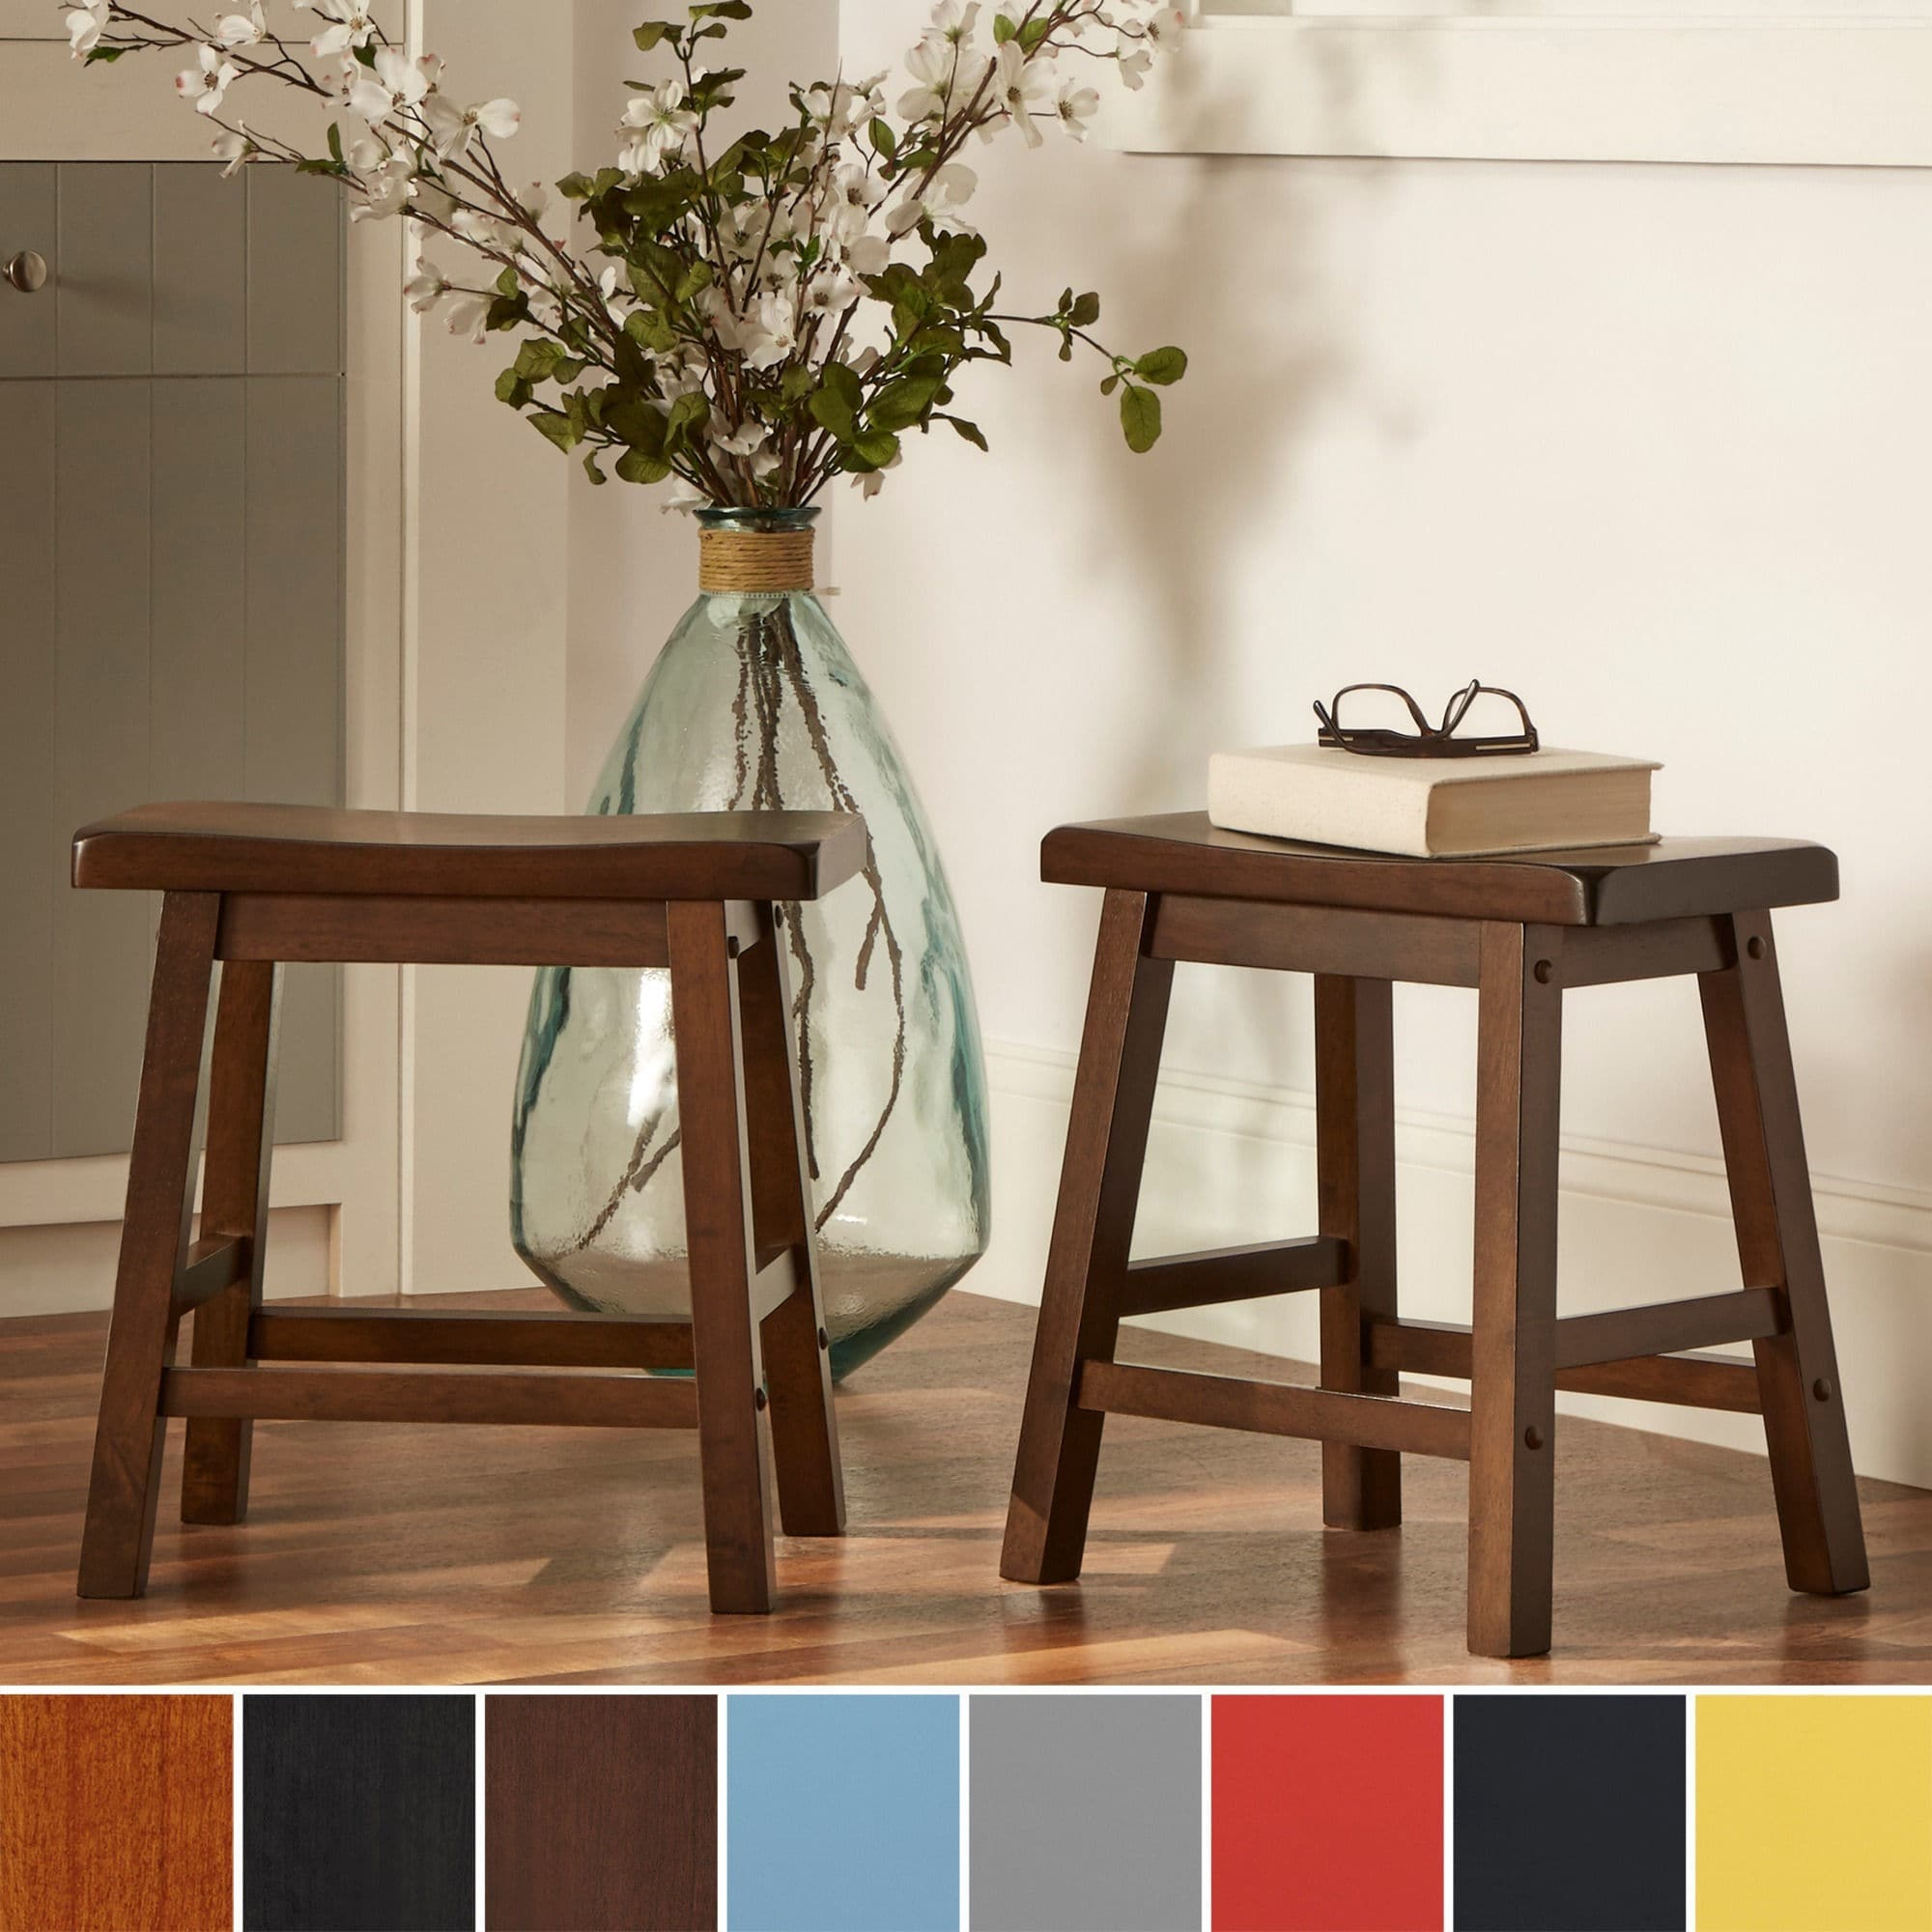 18-inch Backless Stool (Set of 2)